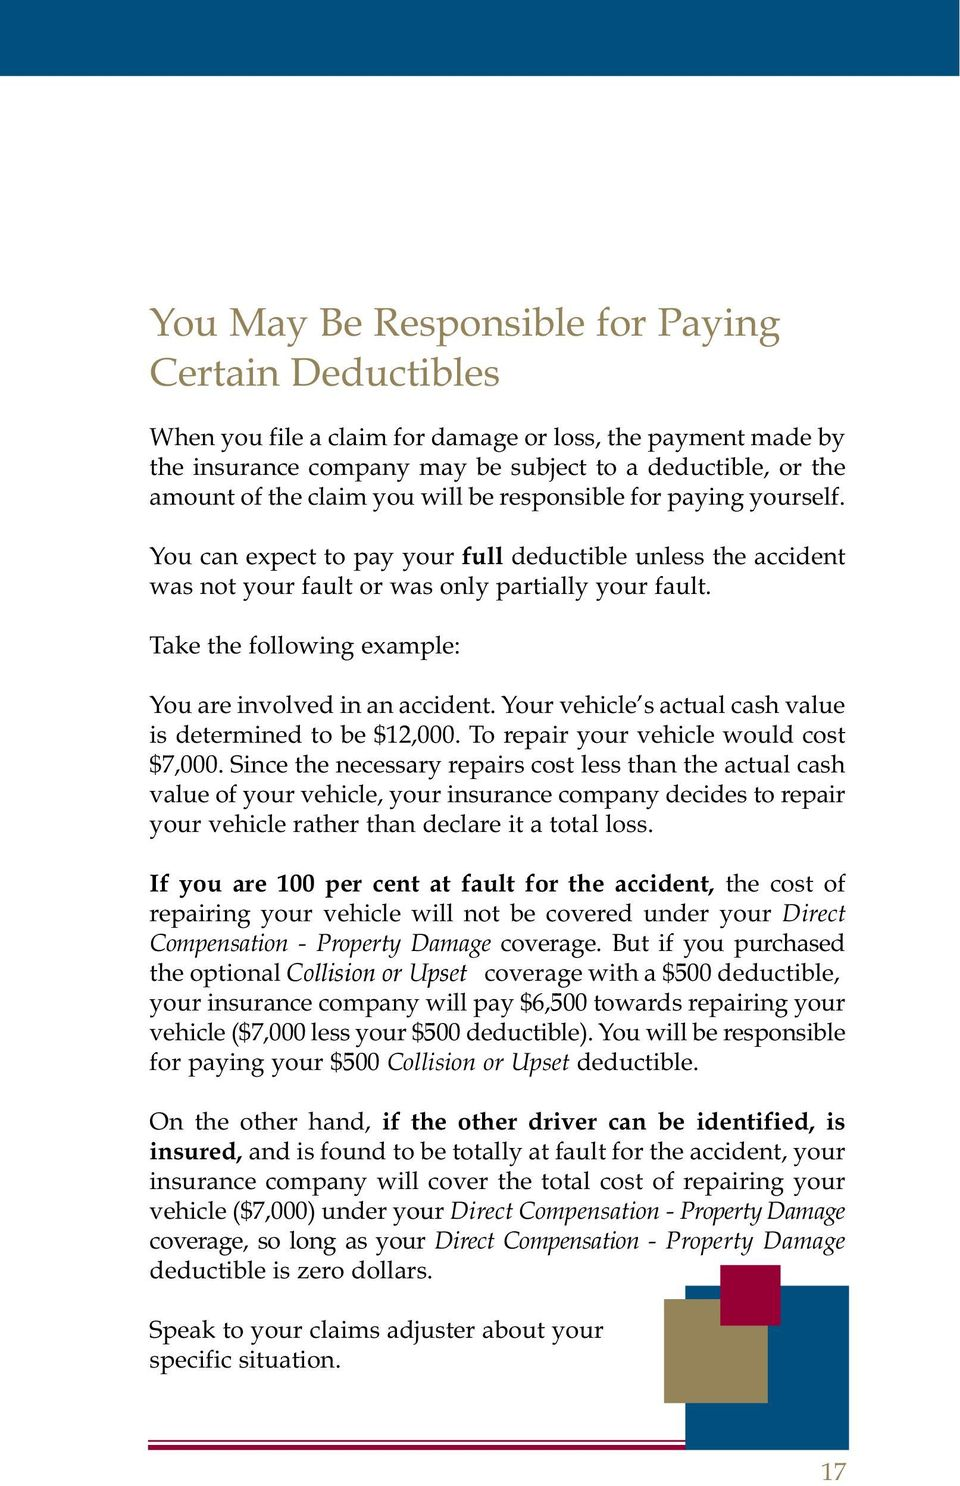 Take the following example: You are involved in an accident. Your vehicle s actual cash value is determined to be $12,000. To repair your vehicle would cost $7,000.